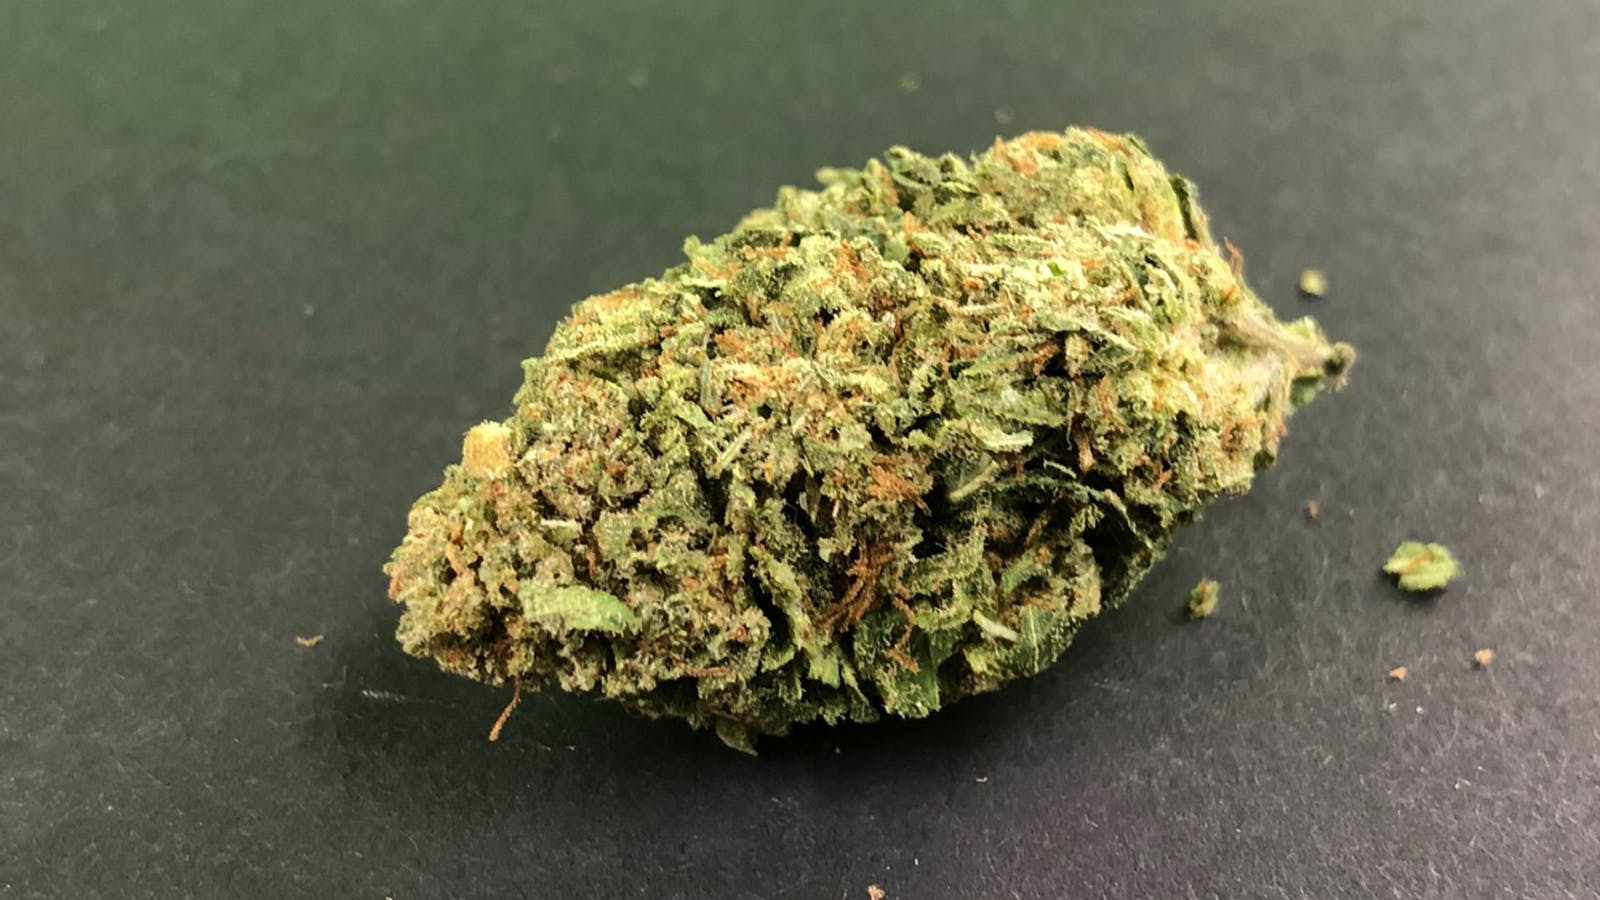 marijuana-dispensaries-20-nw-67th-suite-a-lawton-captain-america-sativa-hybrid